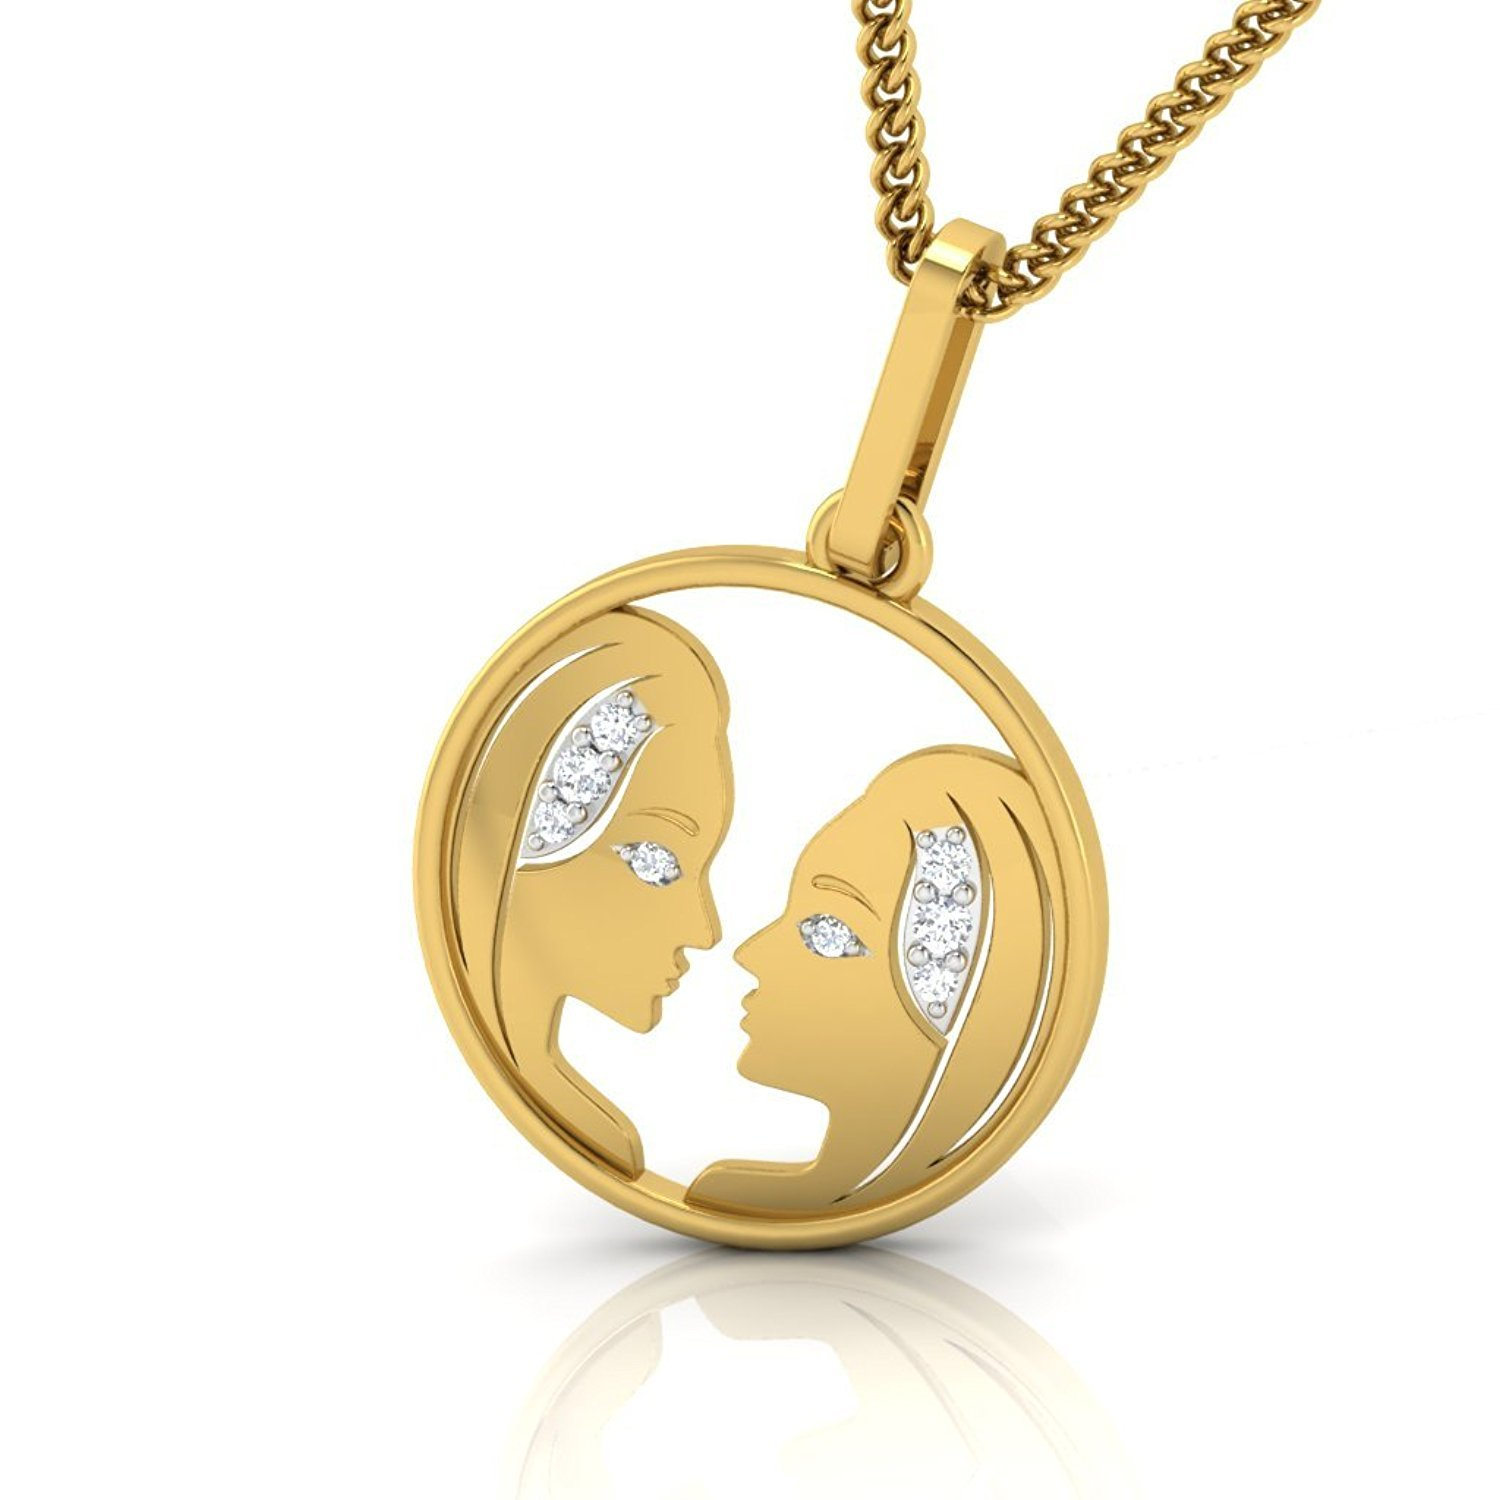 Suhana Jewellery Simulated Diamond Studded Zodiac Icon VIRGO Sign Pendant Necklace in 14K Yellow Gold Plated With Box Chain